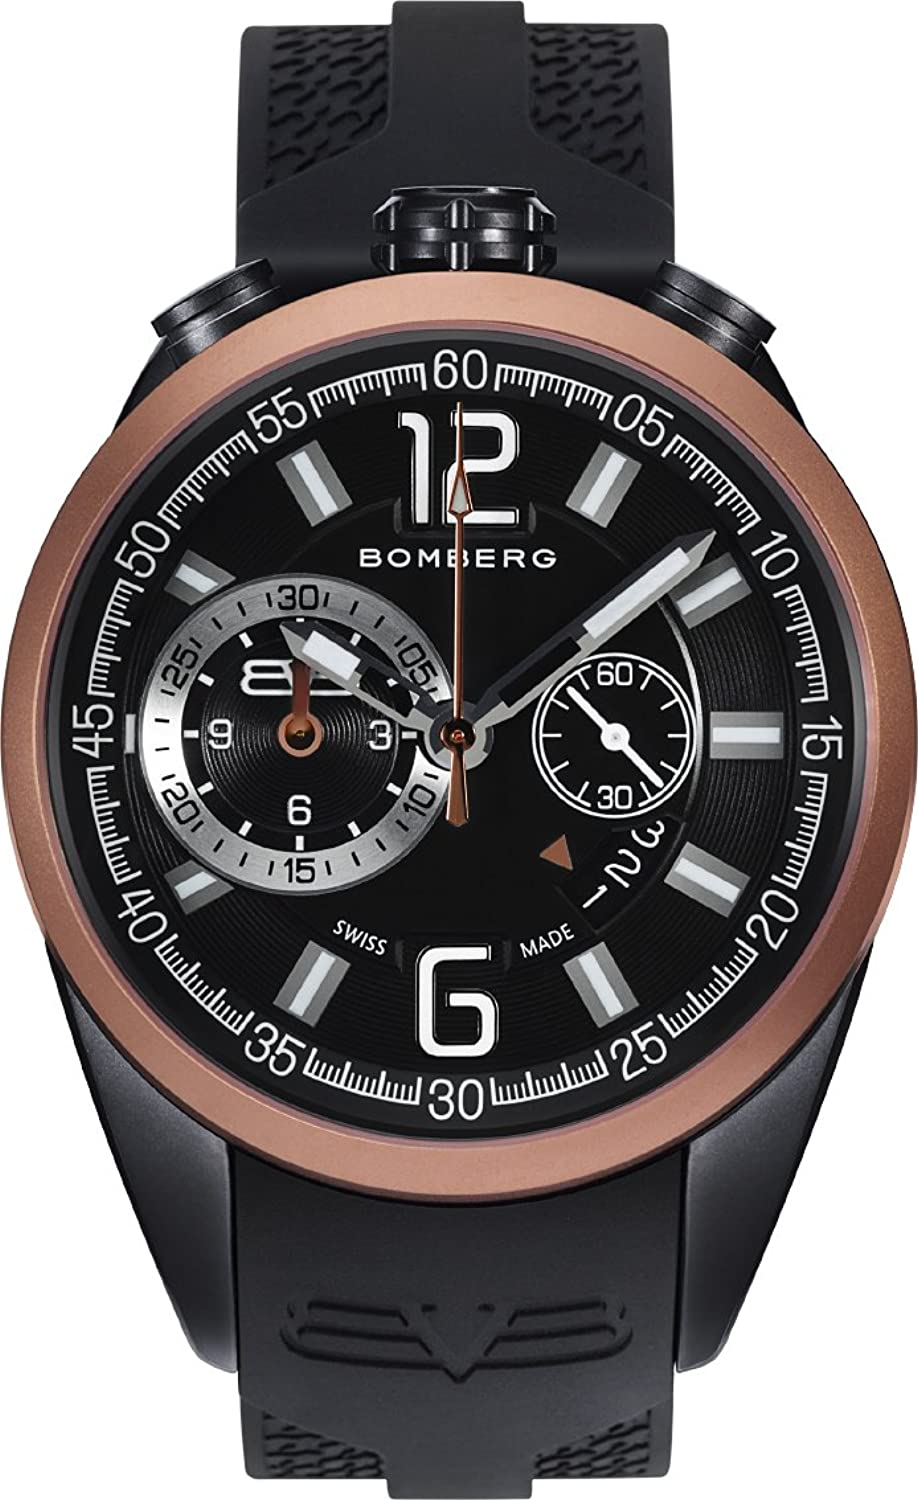 Bomberg NS44CHTT.0092.2 1968 collection Uhren - Swiss Made - 44 mm